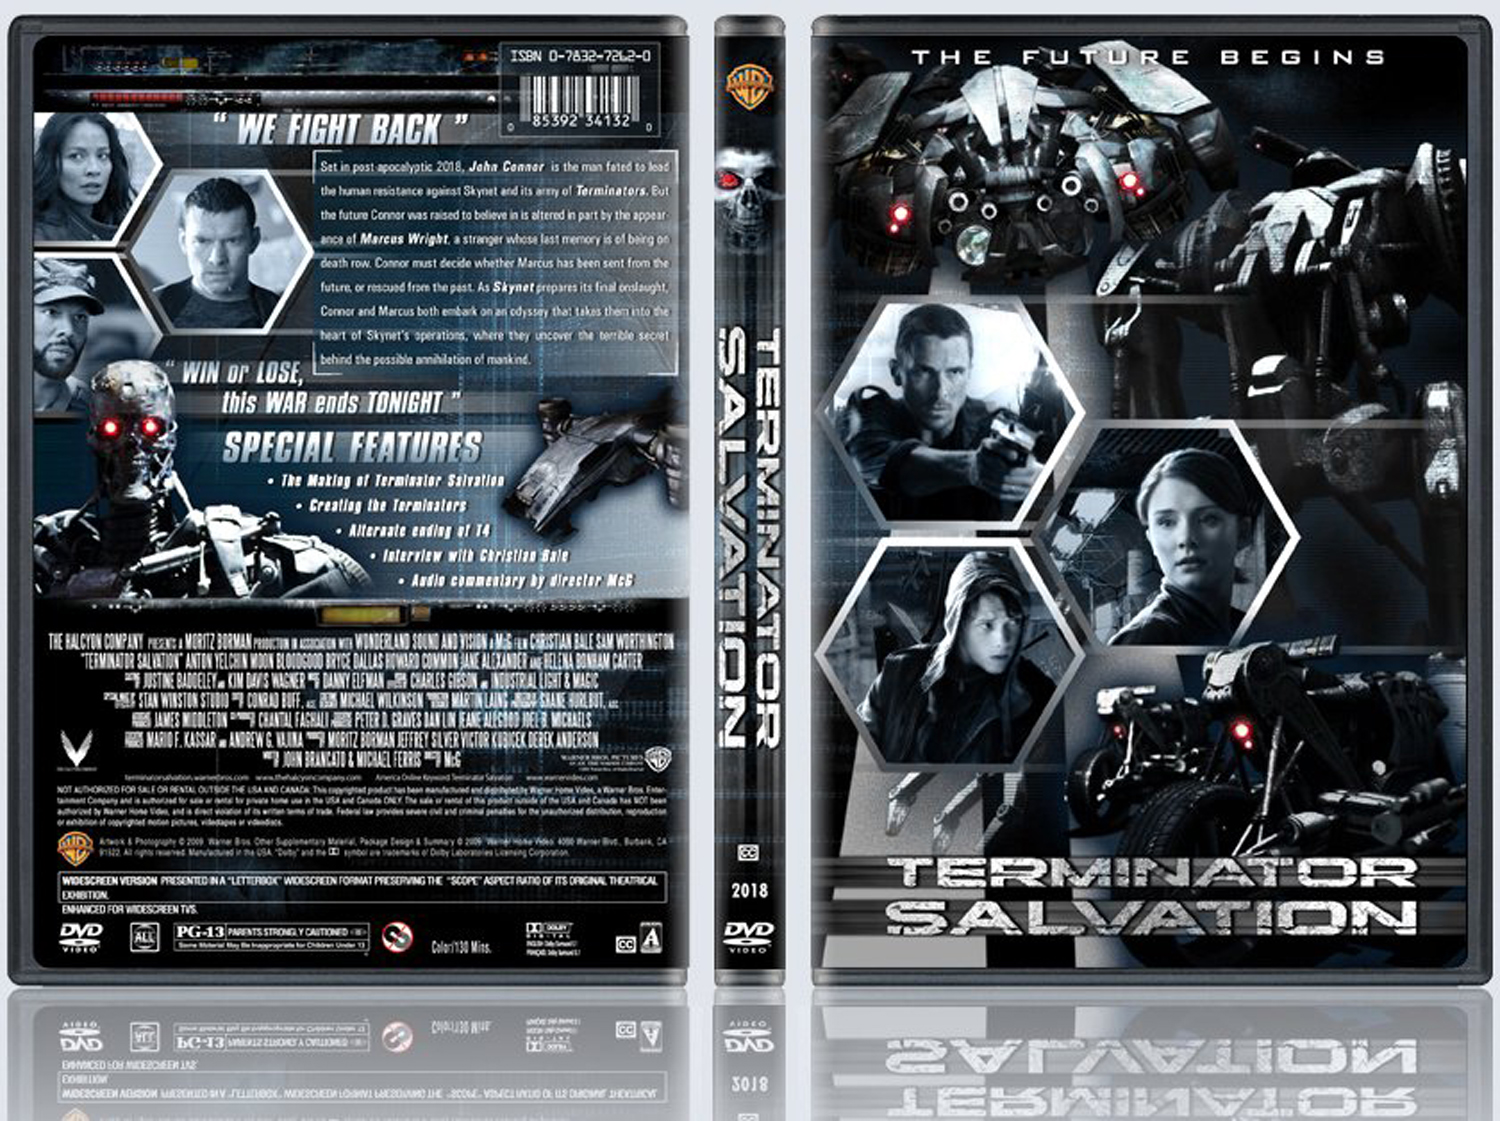 Terminator Salvation DVD Case